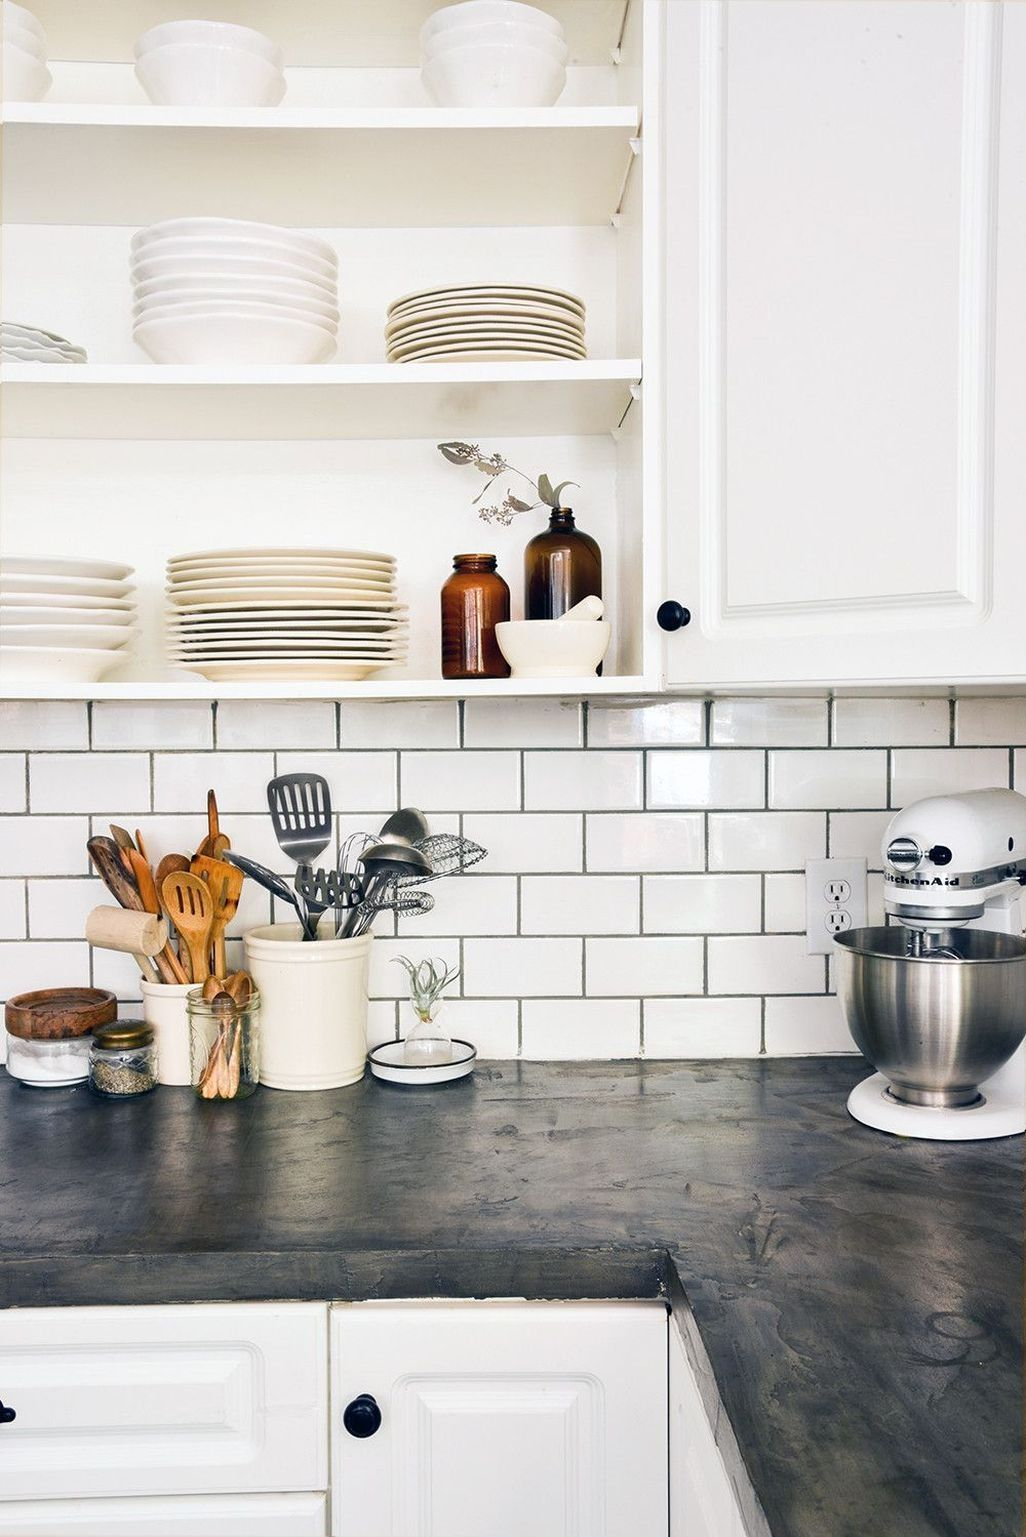 Kitchen Backsplash Tile 9 Of The Most Popular Styles To Consider For Your Next Remodel